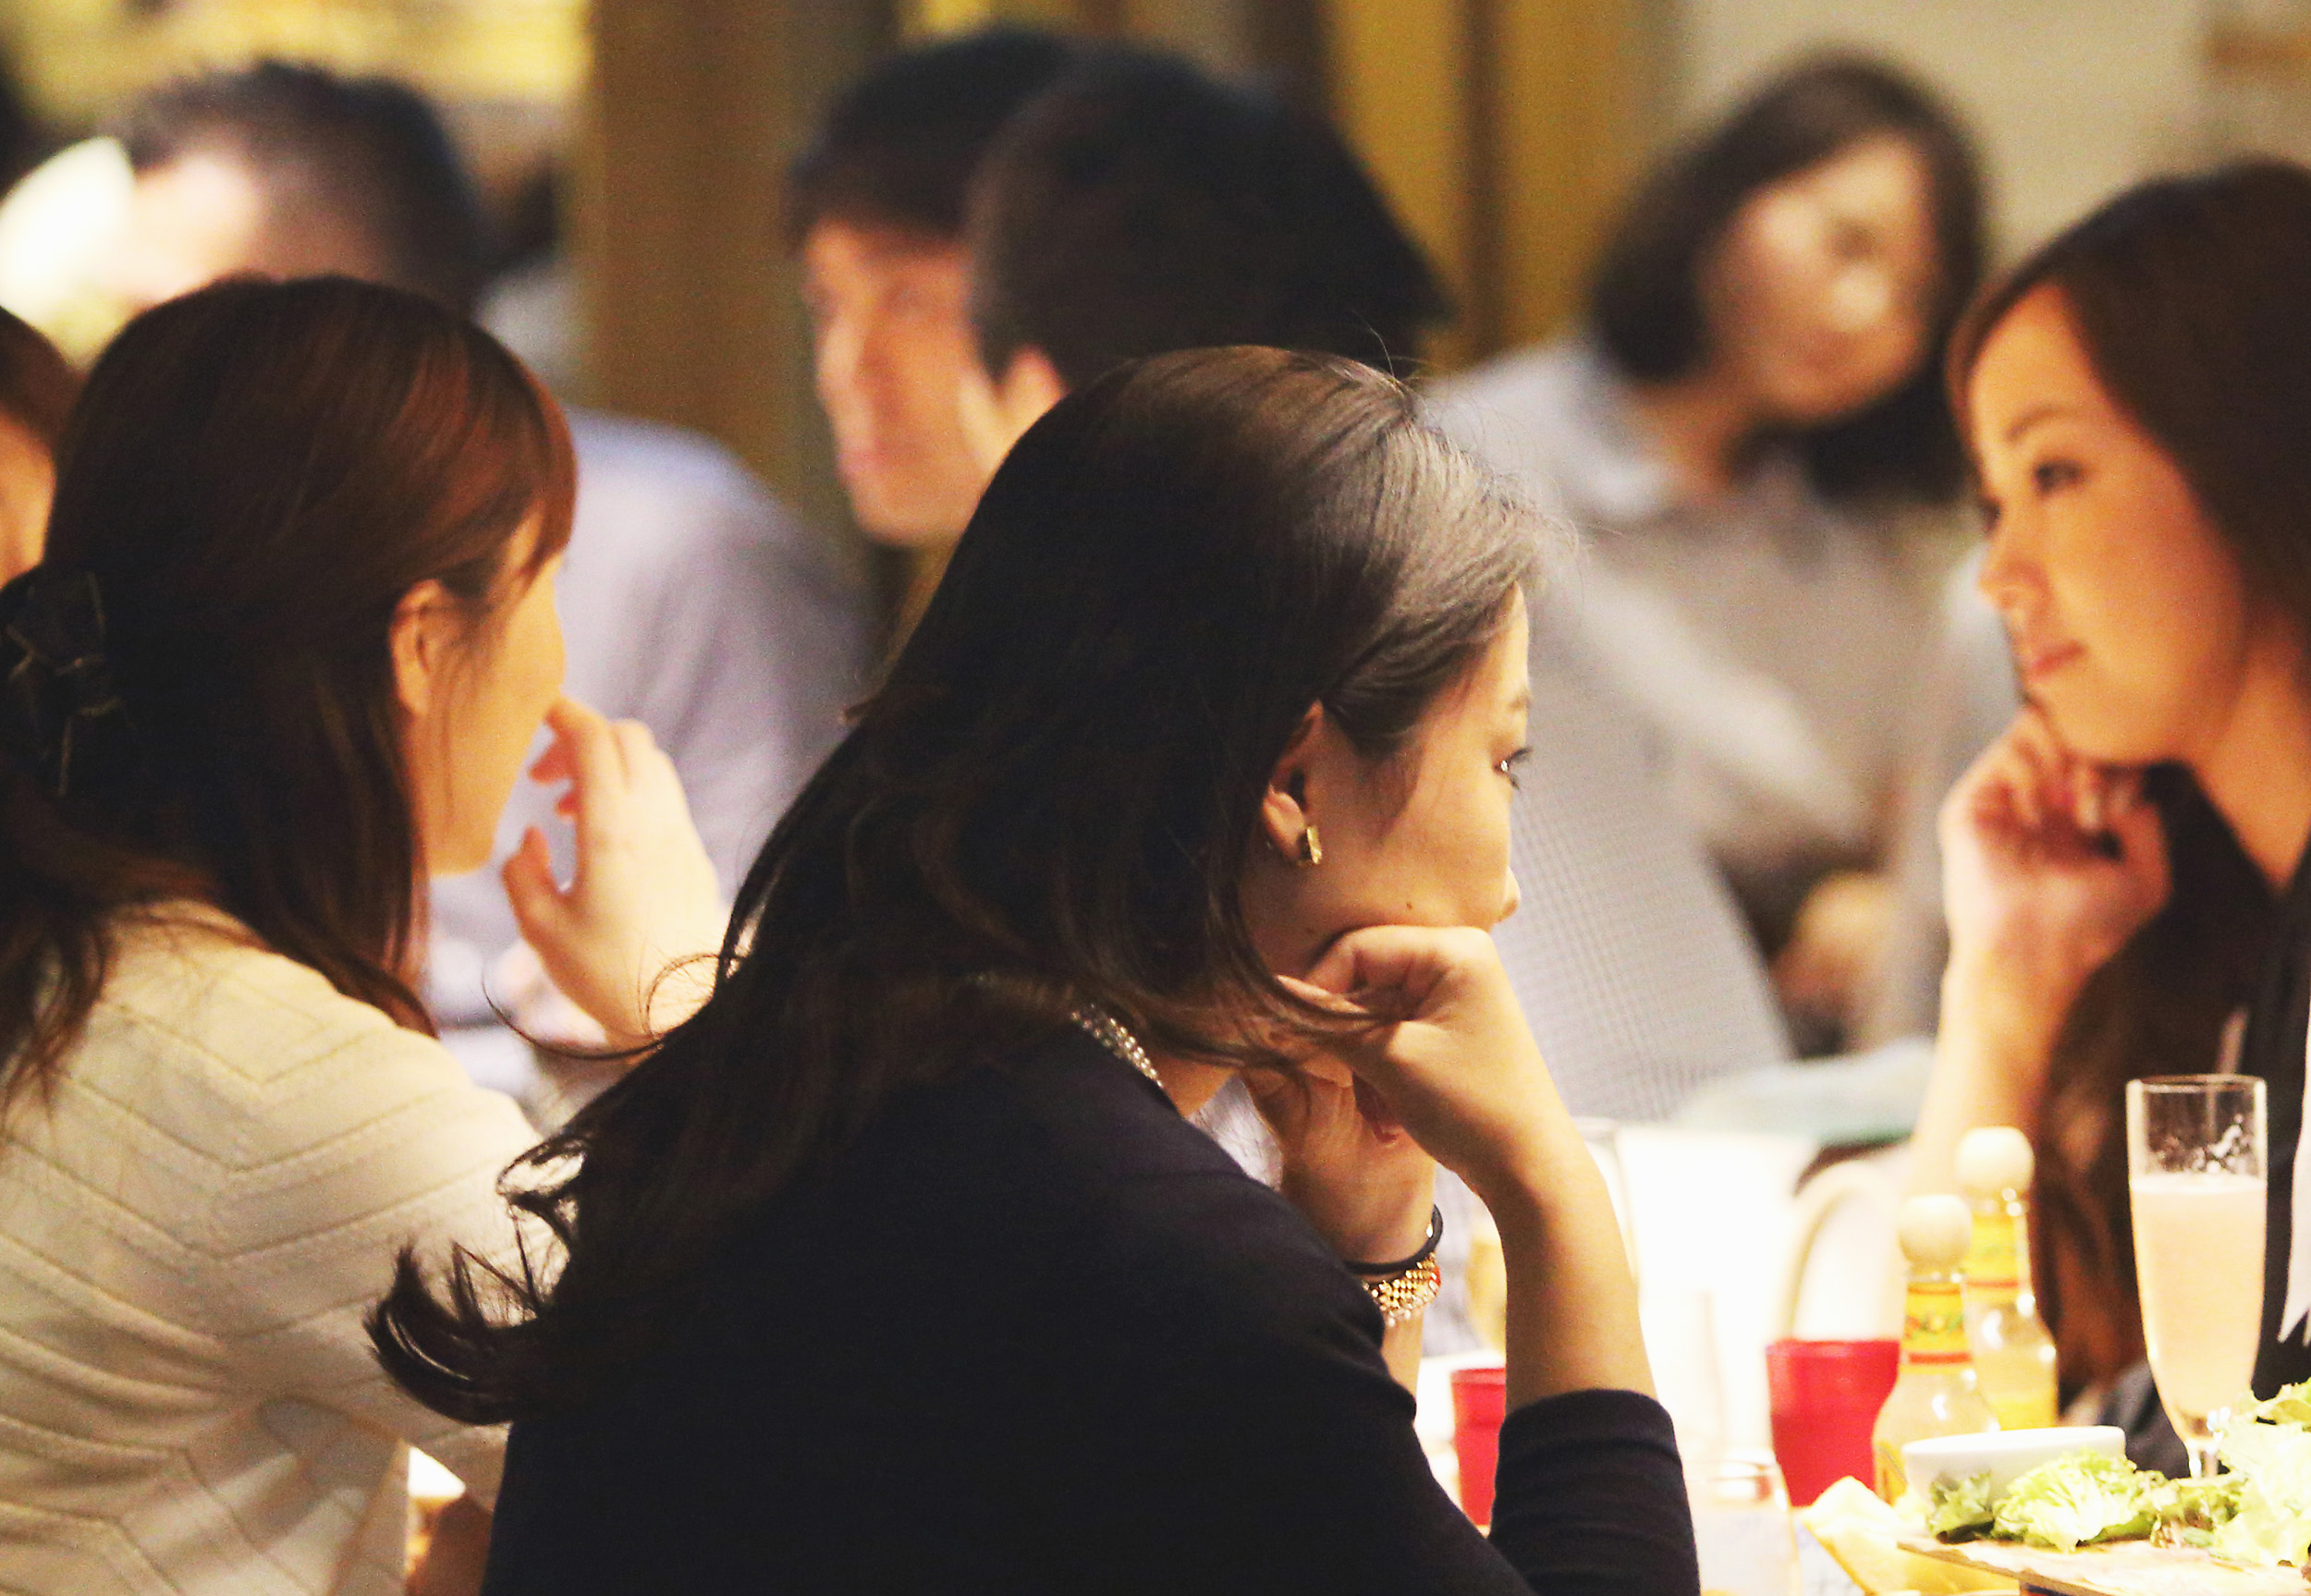 gender equality goal for 2020 elusive white paper the times women dine at a bar in tokyo last the 2015 white paper on gender